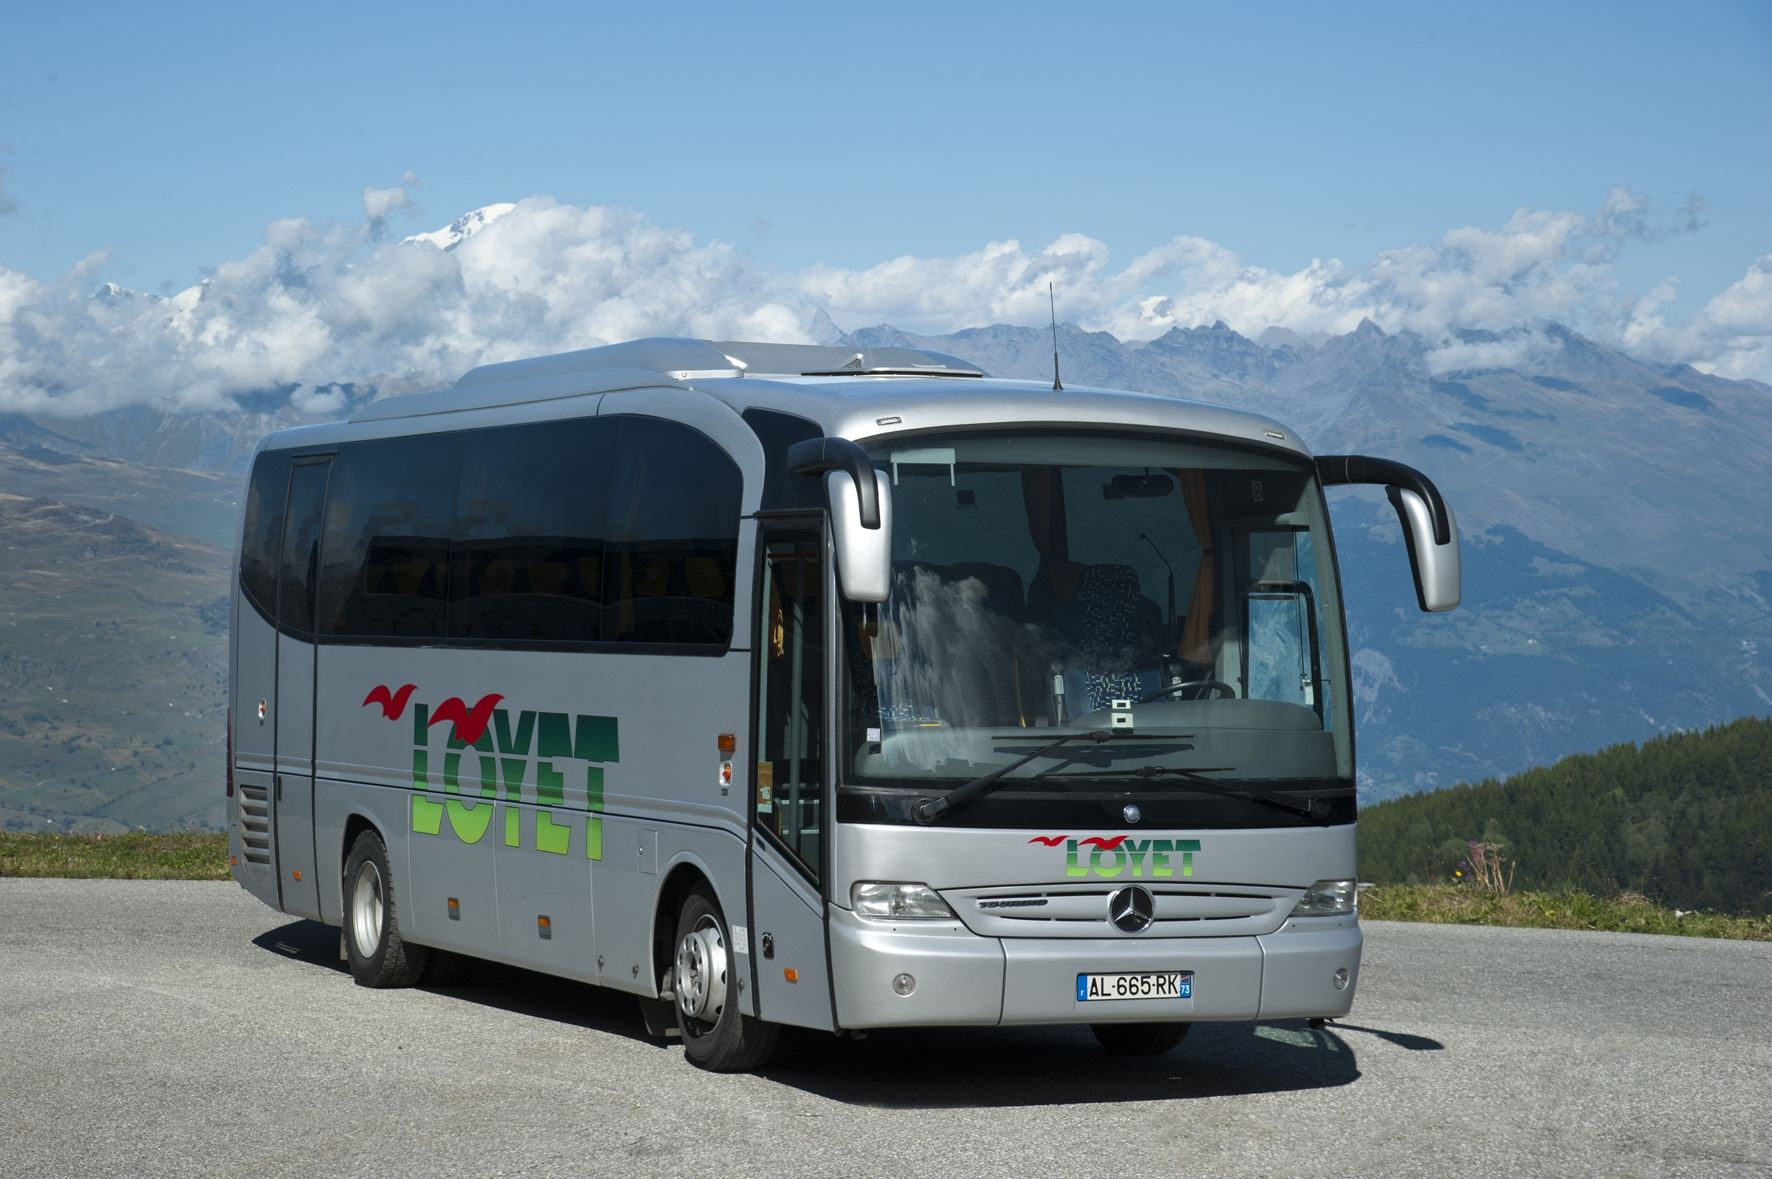 SATURDAY BUS TRANSFER FROM GENEVA AIRPORT TO VAL THORENS - 58€ PER TICKET